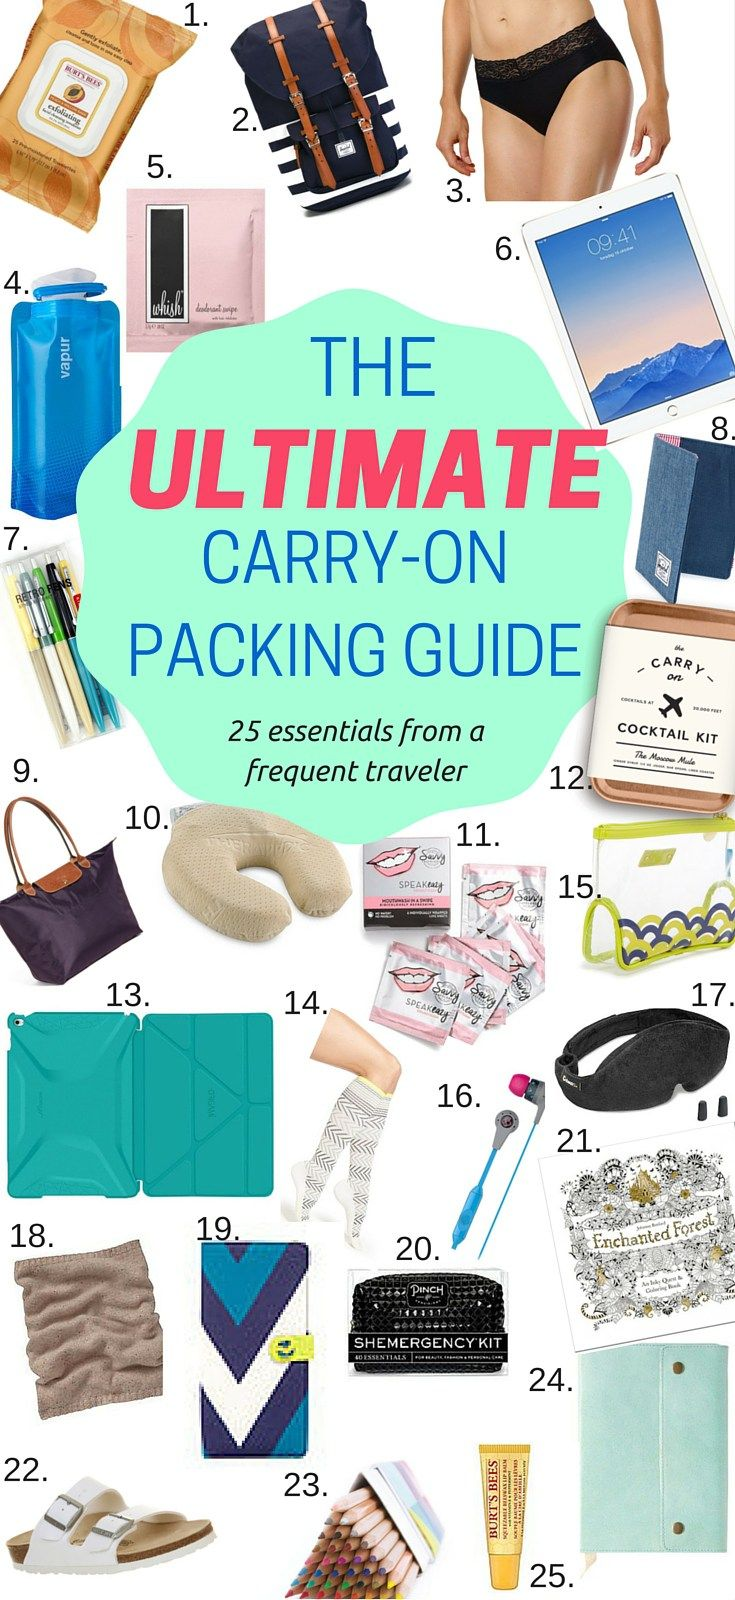 Learn the things you need to pack in your carry-on from a frequent traveler